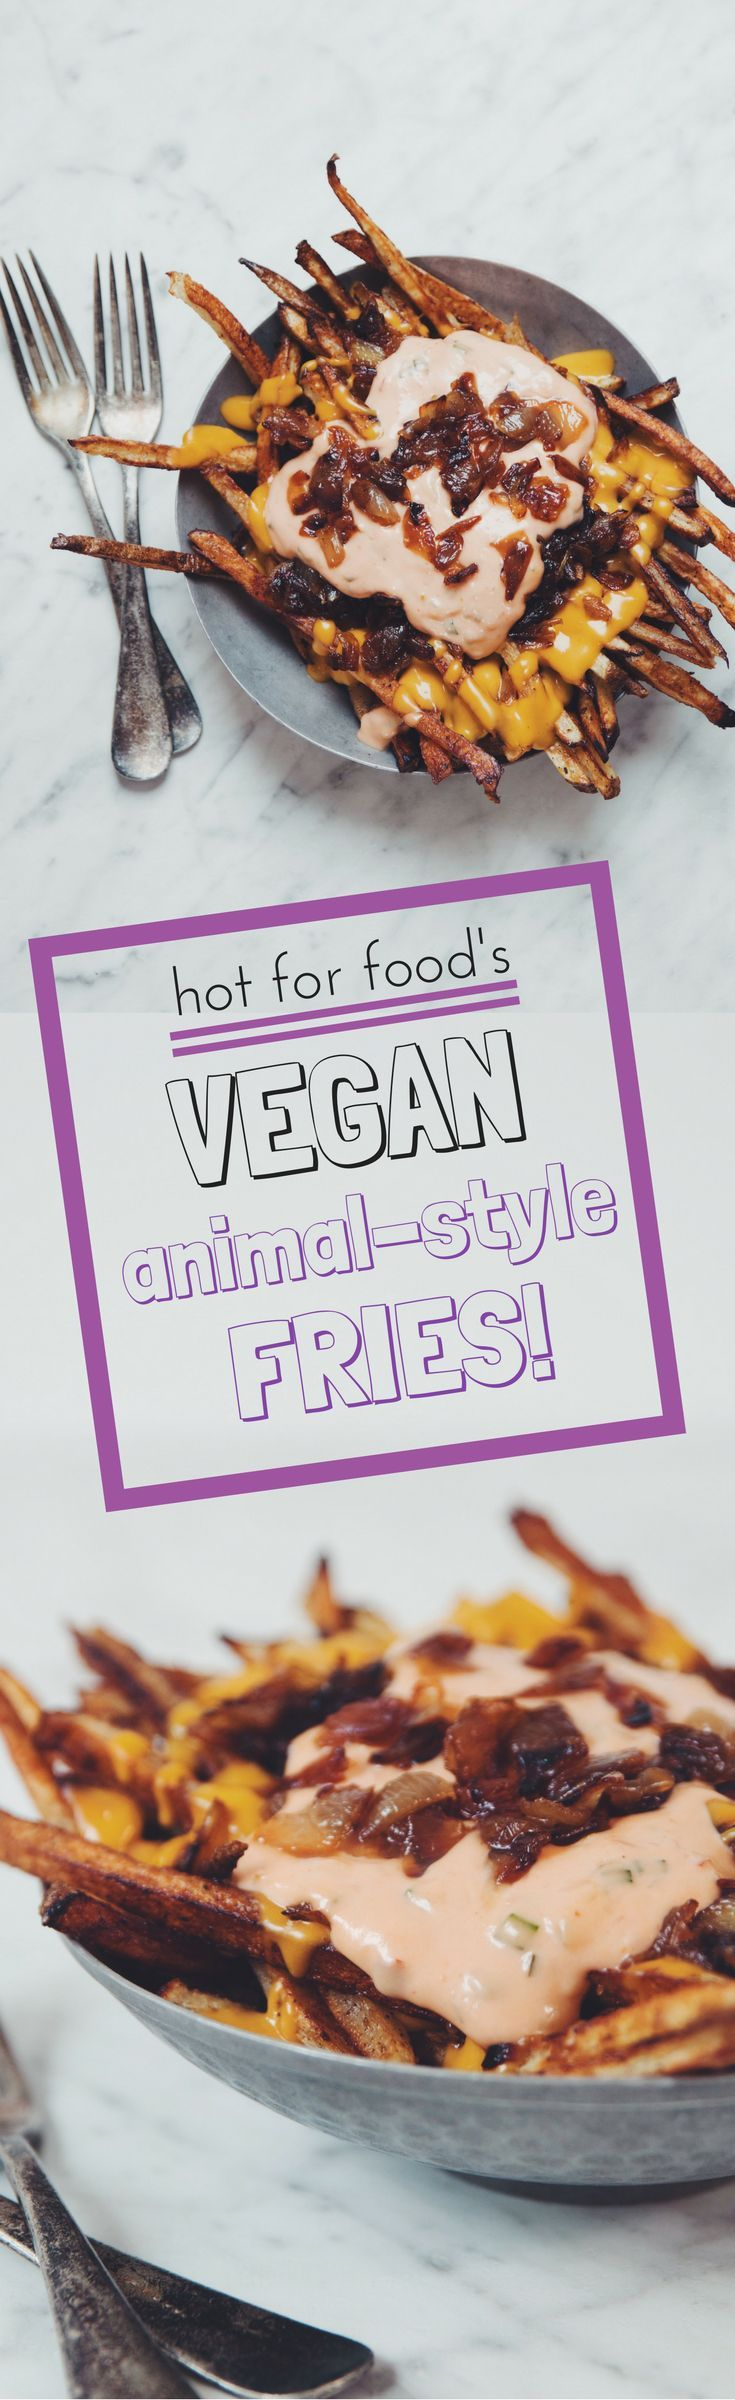 62 best best vegan party food images on pinterest vegan recipes vegan animal style fries in n out burger copy cat forumfinder Choice Image